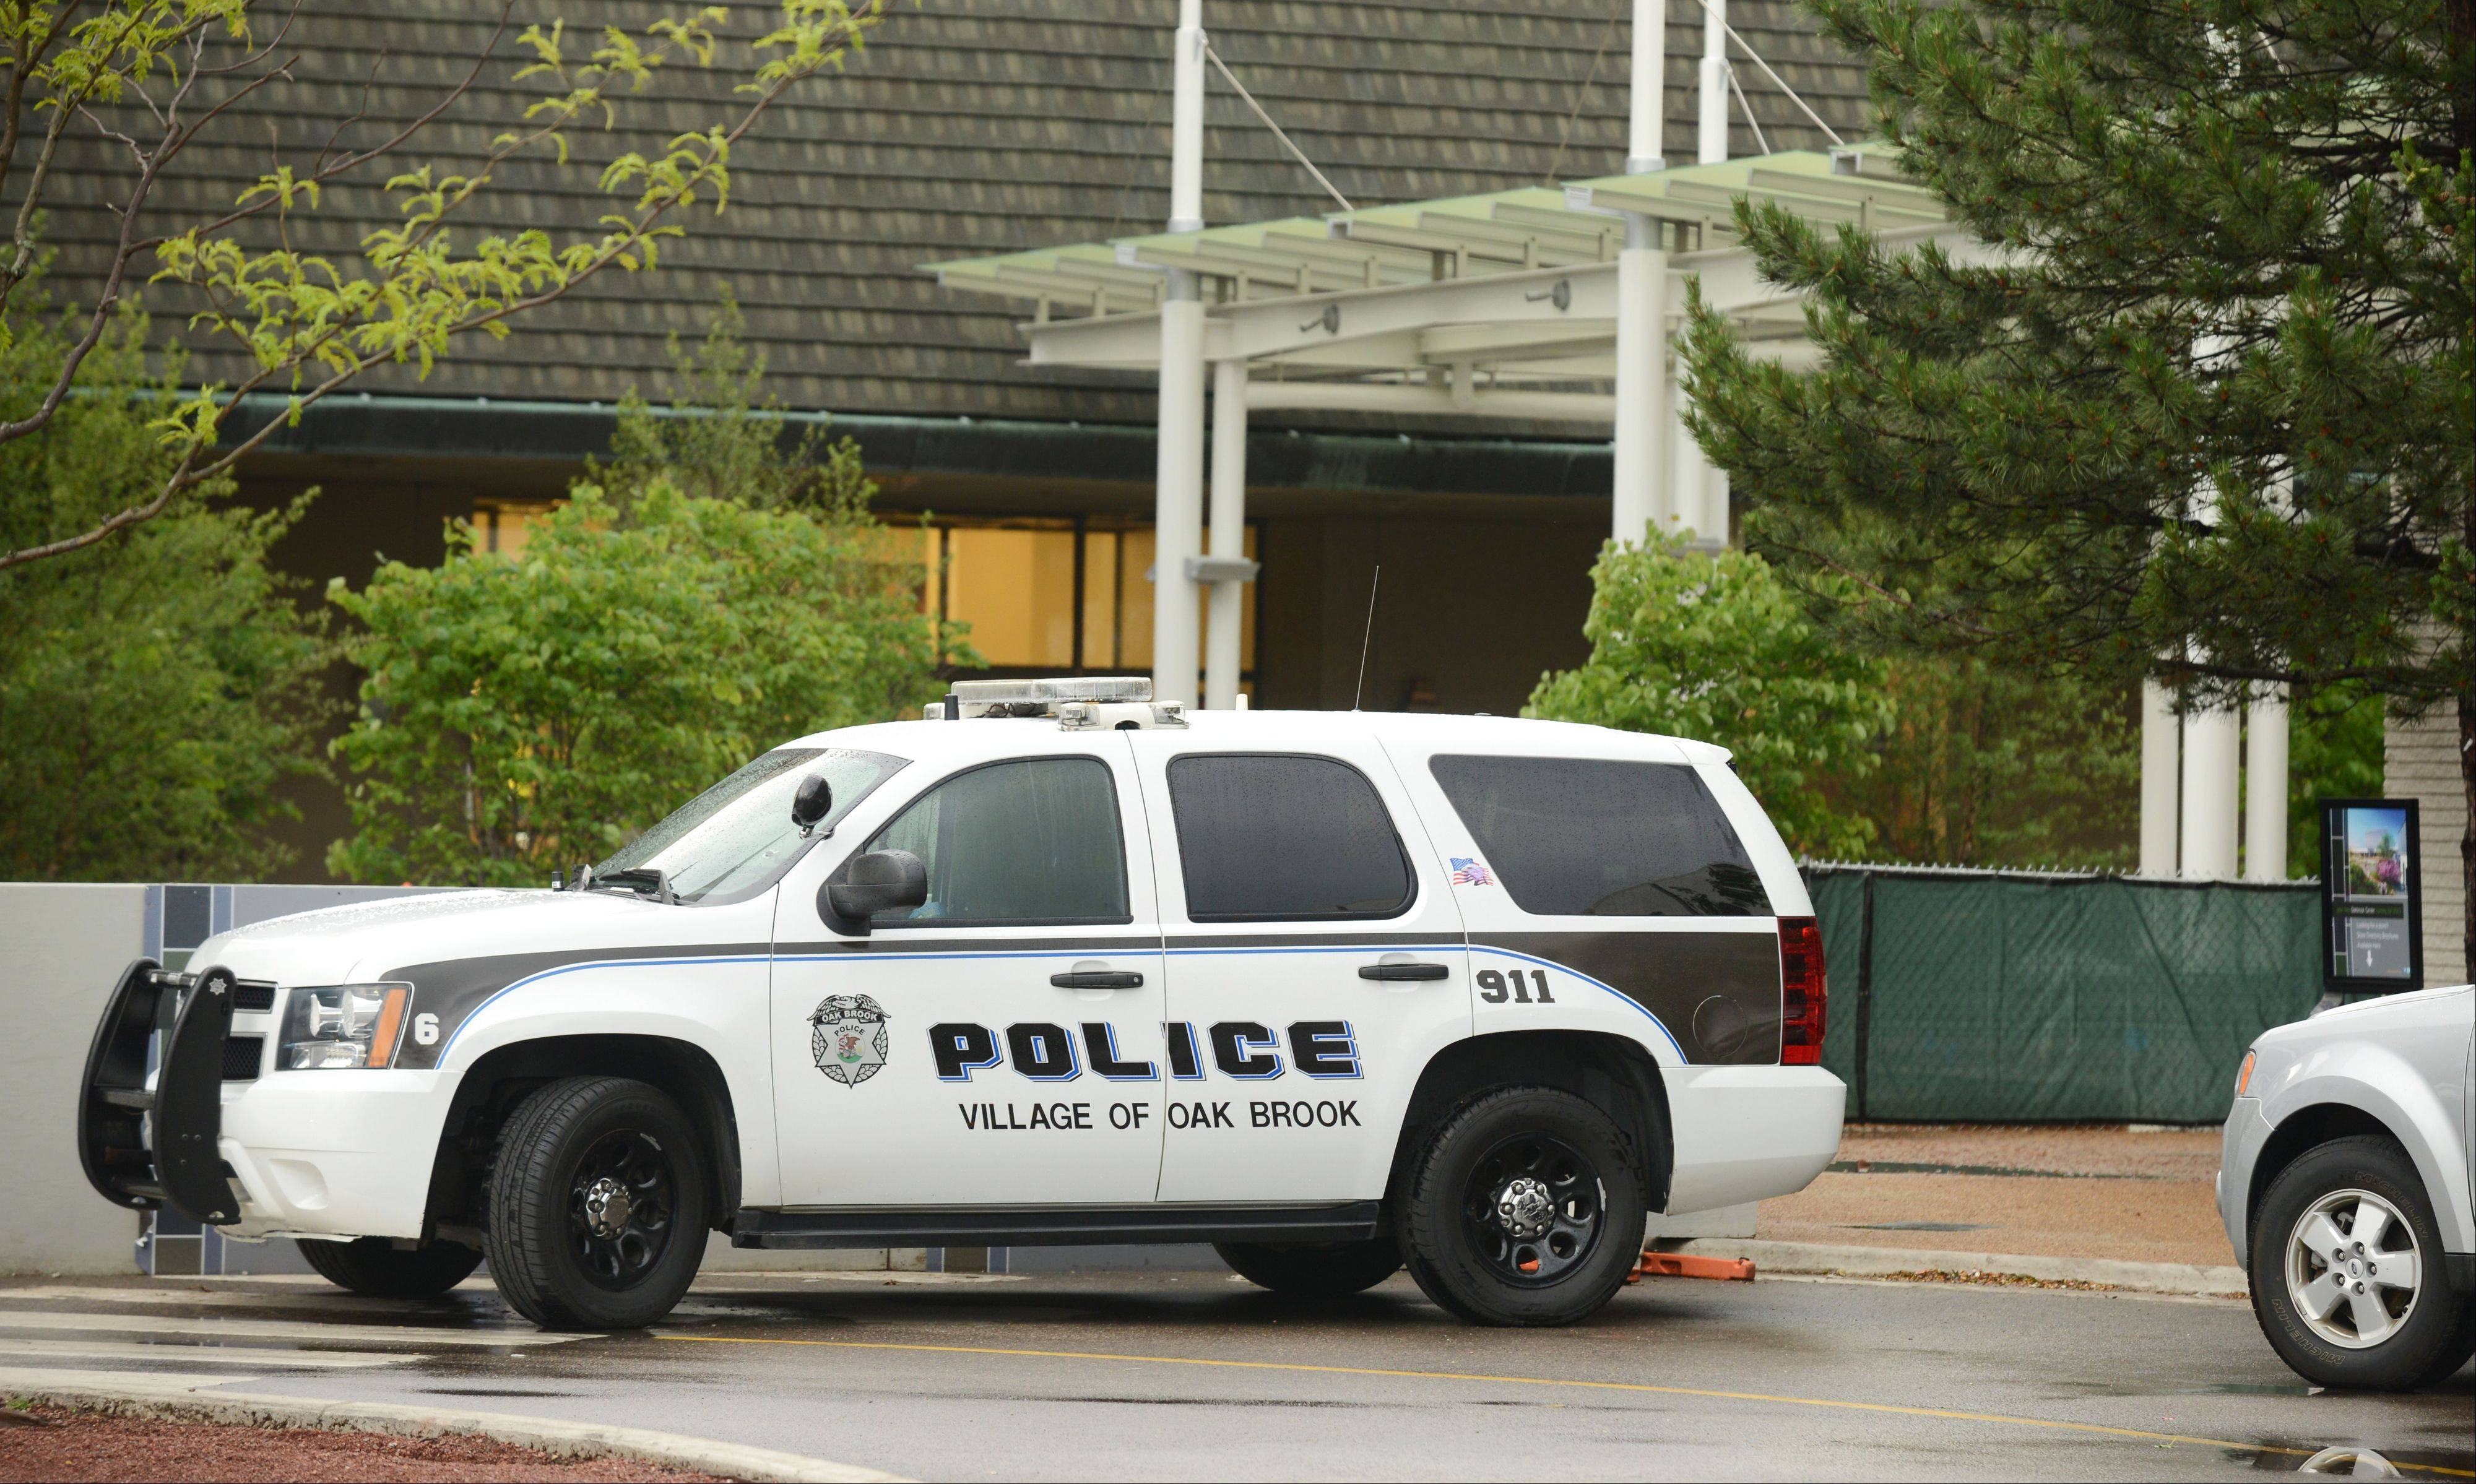 An Oak Brook police vehicle sits near one of the entrances to Oakbrook Center mall after a shooting Sunday at the C.D. Peacock jewelry store.